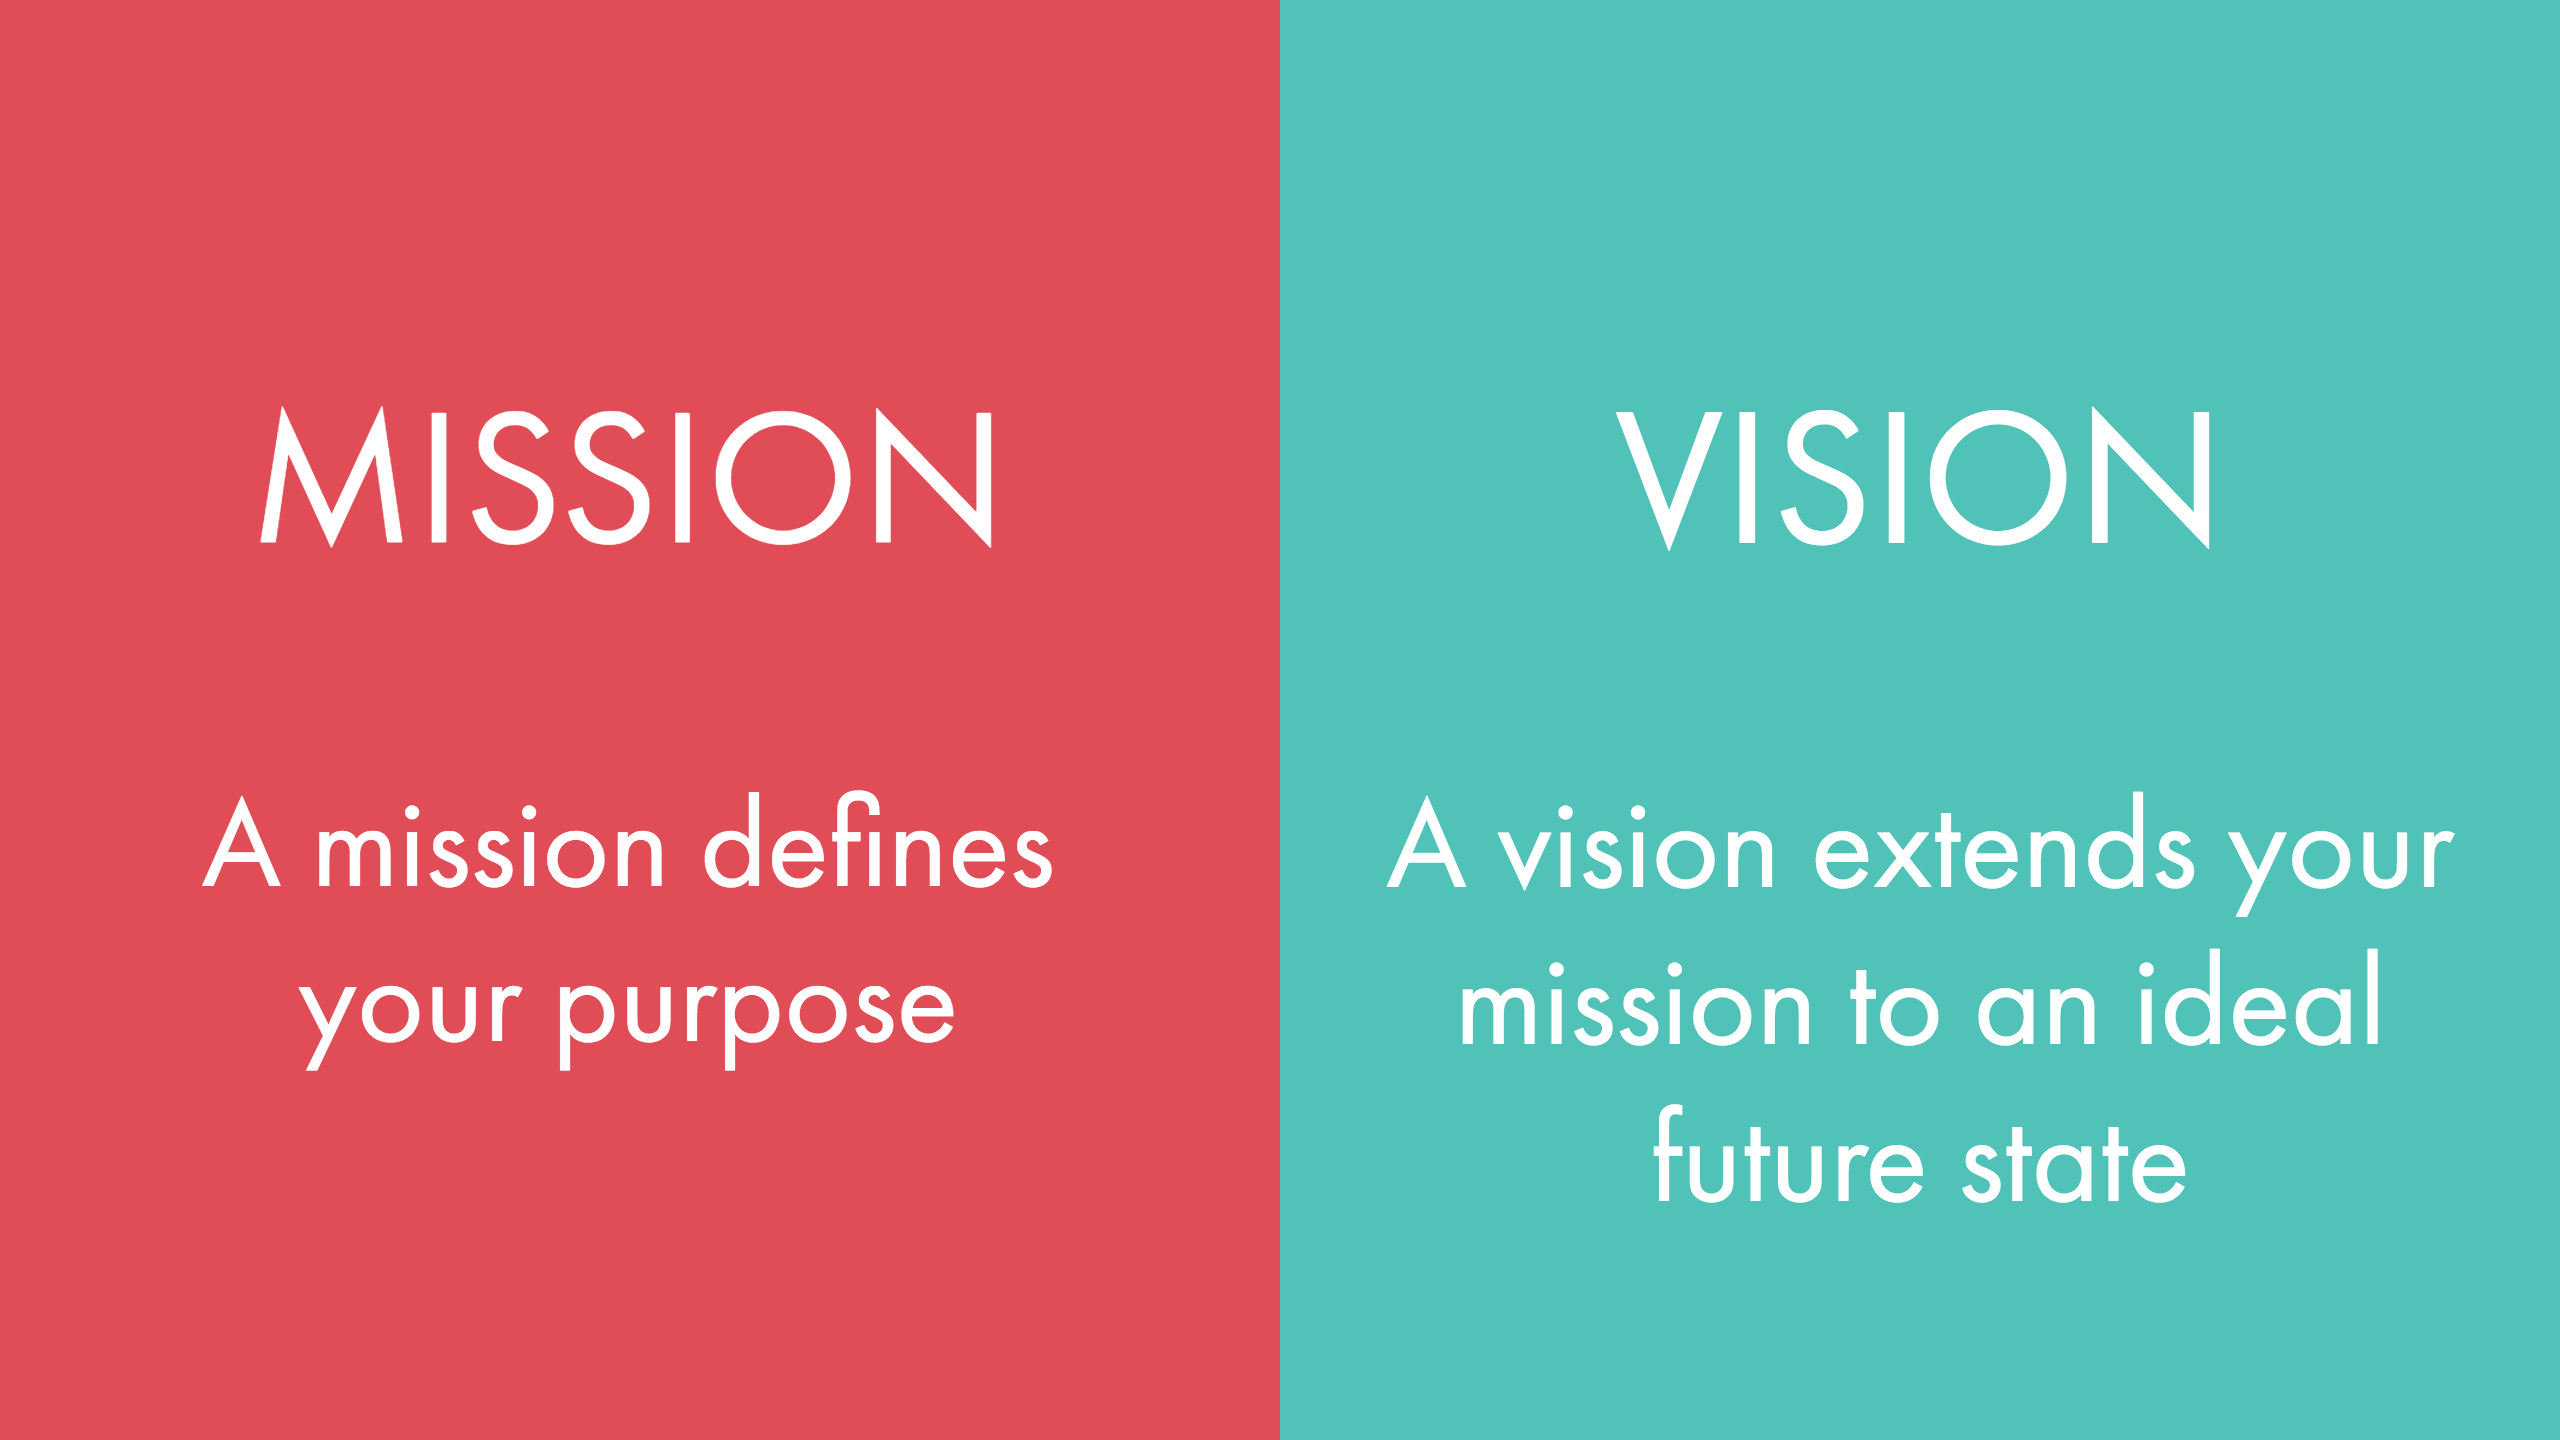 A mission (which should be defined first) defines your purpose | A vision extends your mission to an ideal future state